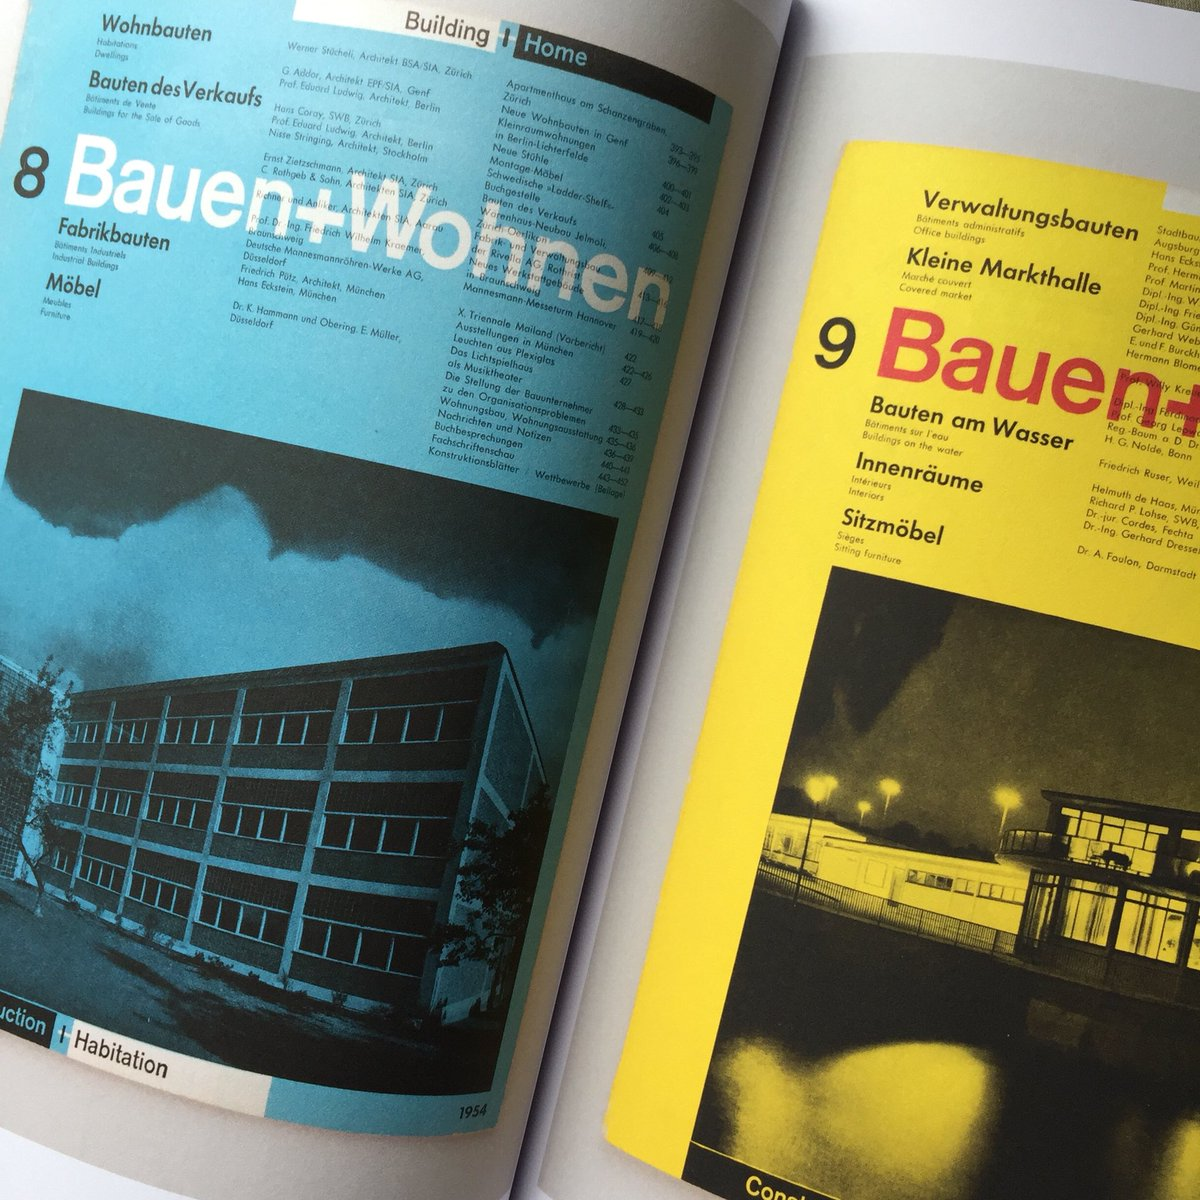 Bauen+Wohnen (German edition) covers from 1954, as featured in Impact 1.0: Design magazines, journals and periodicals [1922–1973] #uniteditionspic.twitter.com/rTqEp4c8e4